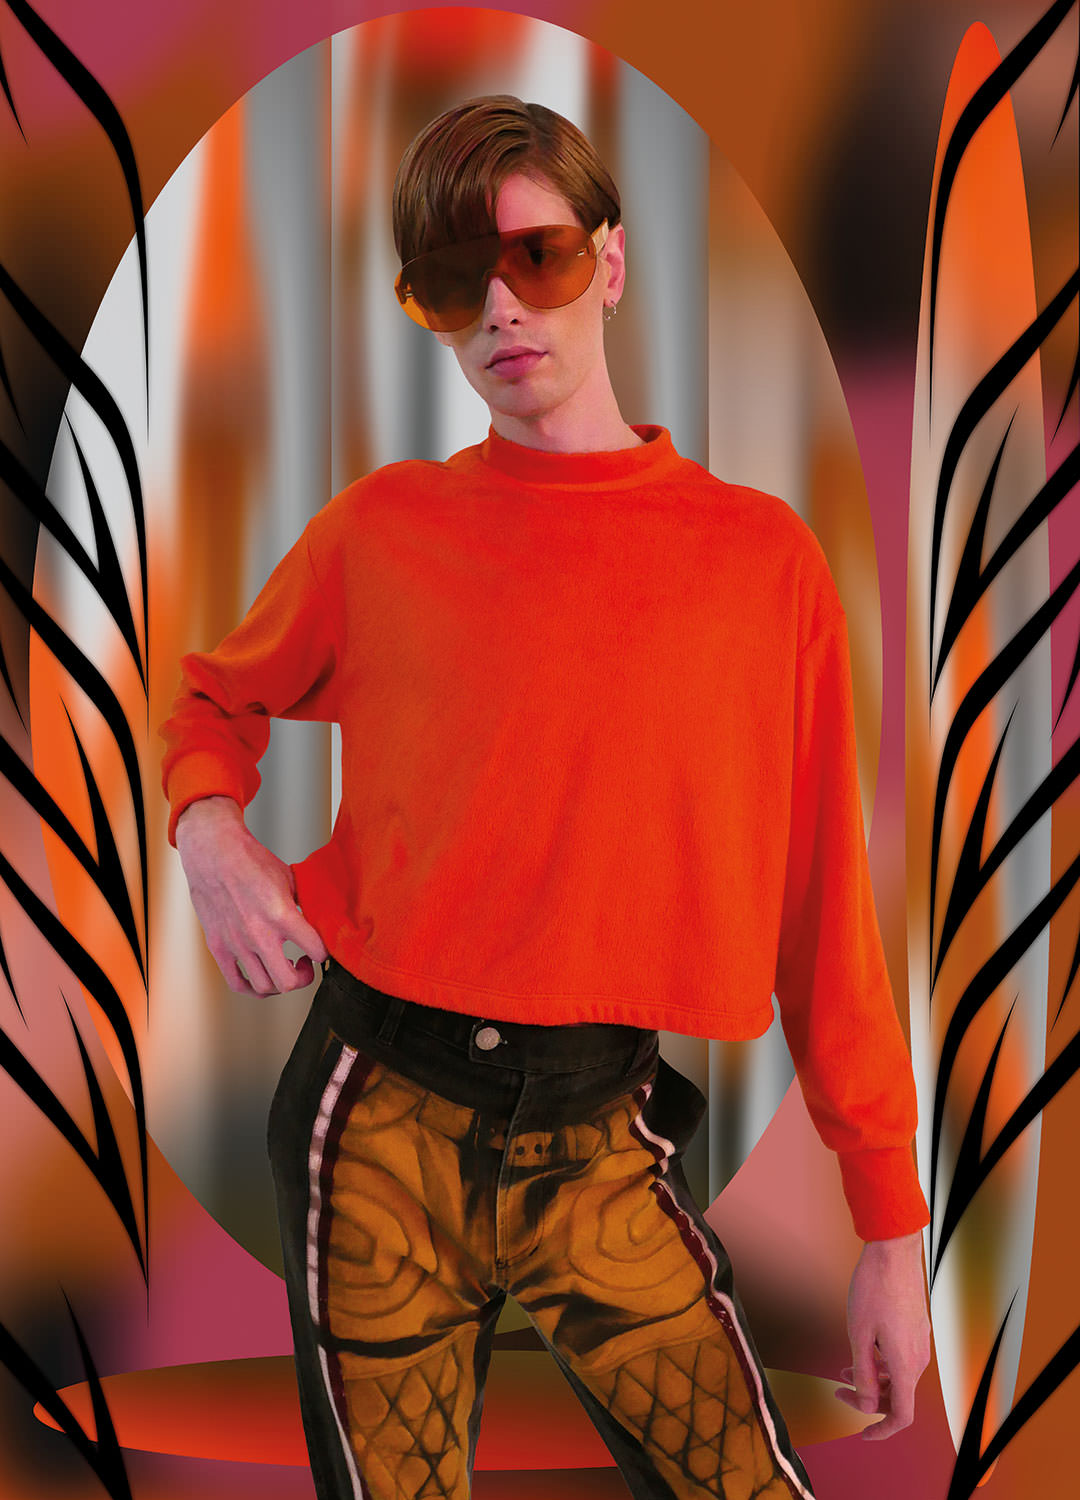 Logan: Sunglasses: Retro Super Future, Top: Eckhaus Latta, Pants:Jean Paul Gautier vintage courtesy of James Veloria Studio